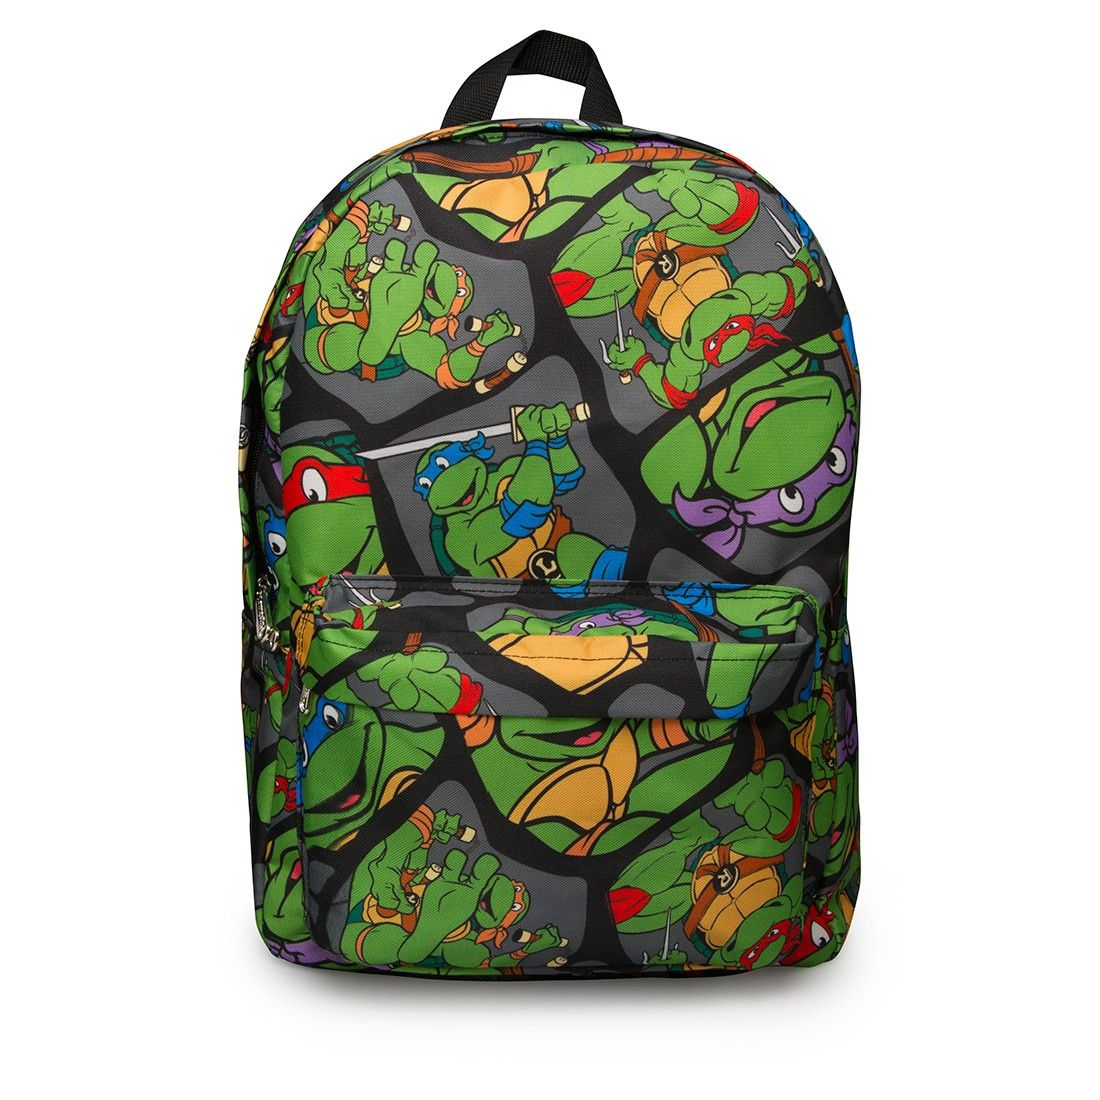 5aa825b55f1 Jett KINDERGARTEN!!! Teenage Mutant Ninja Turtles Print Backpack ...